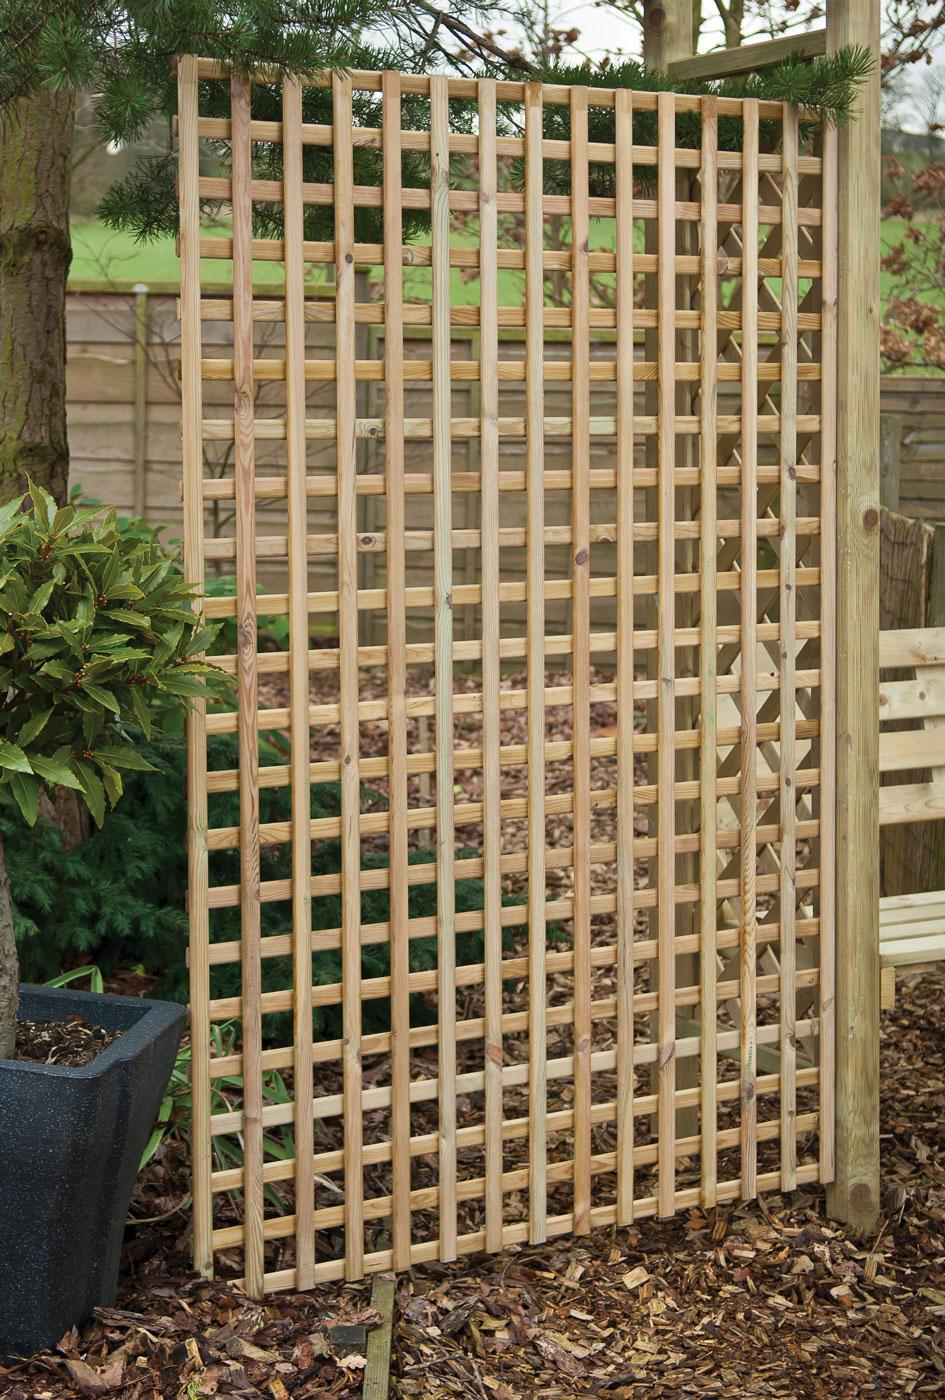 Fencing panels timber fencing garden fence trellis for How to build a lattice screen fence